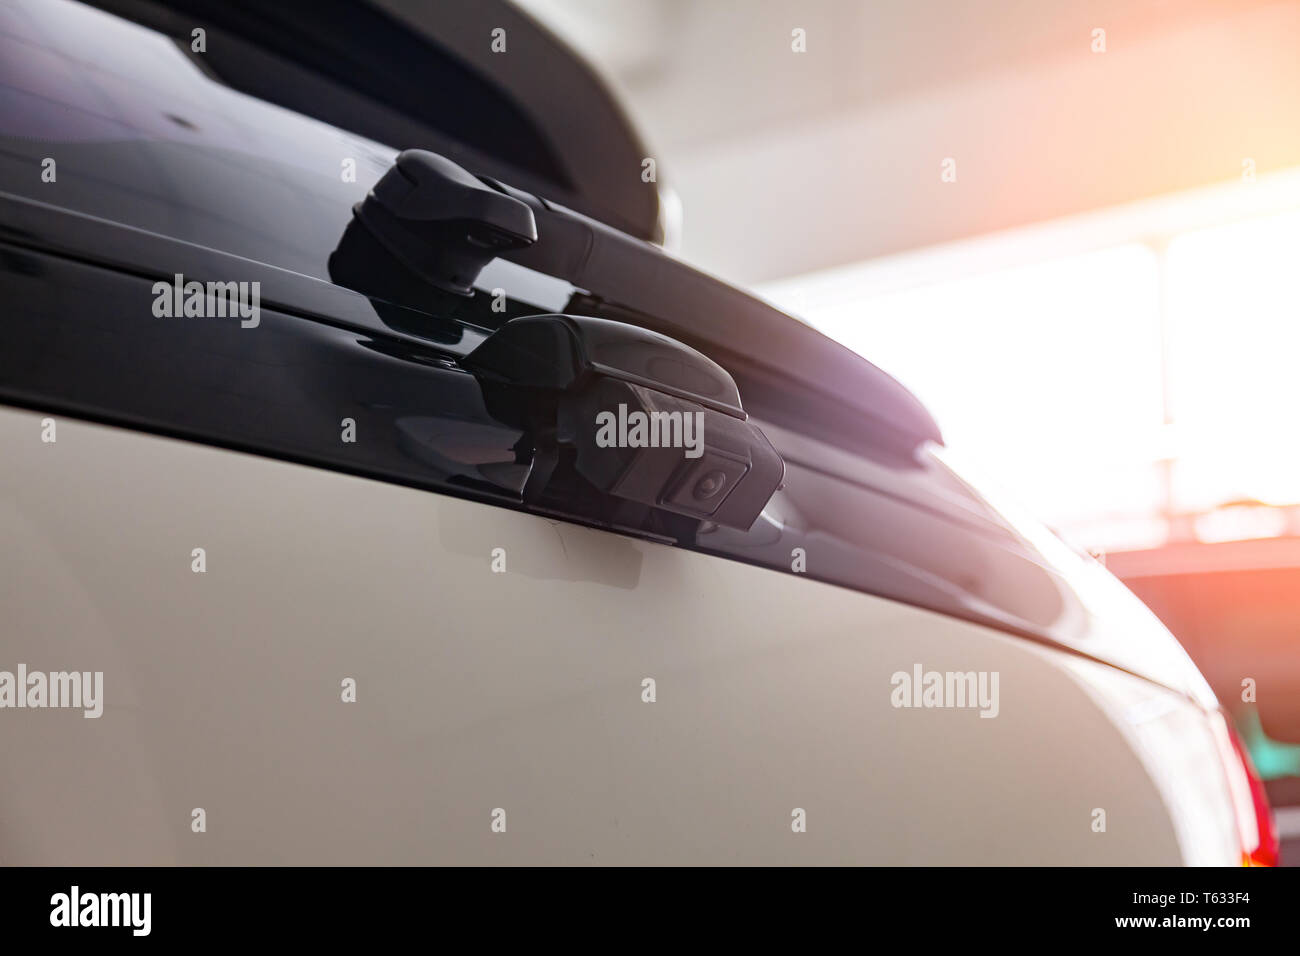 Close-up Interior view with rear view camera on the trunk of luxury very expensive new white car suv stands after cleaning in the vehicle repair works - Stock Image